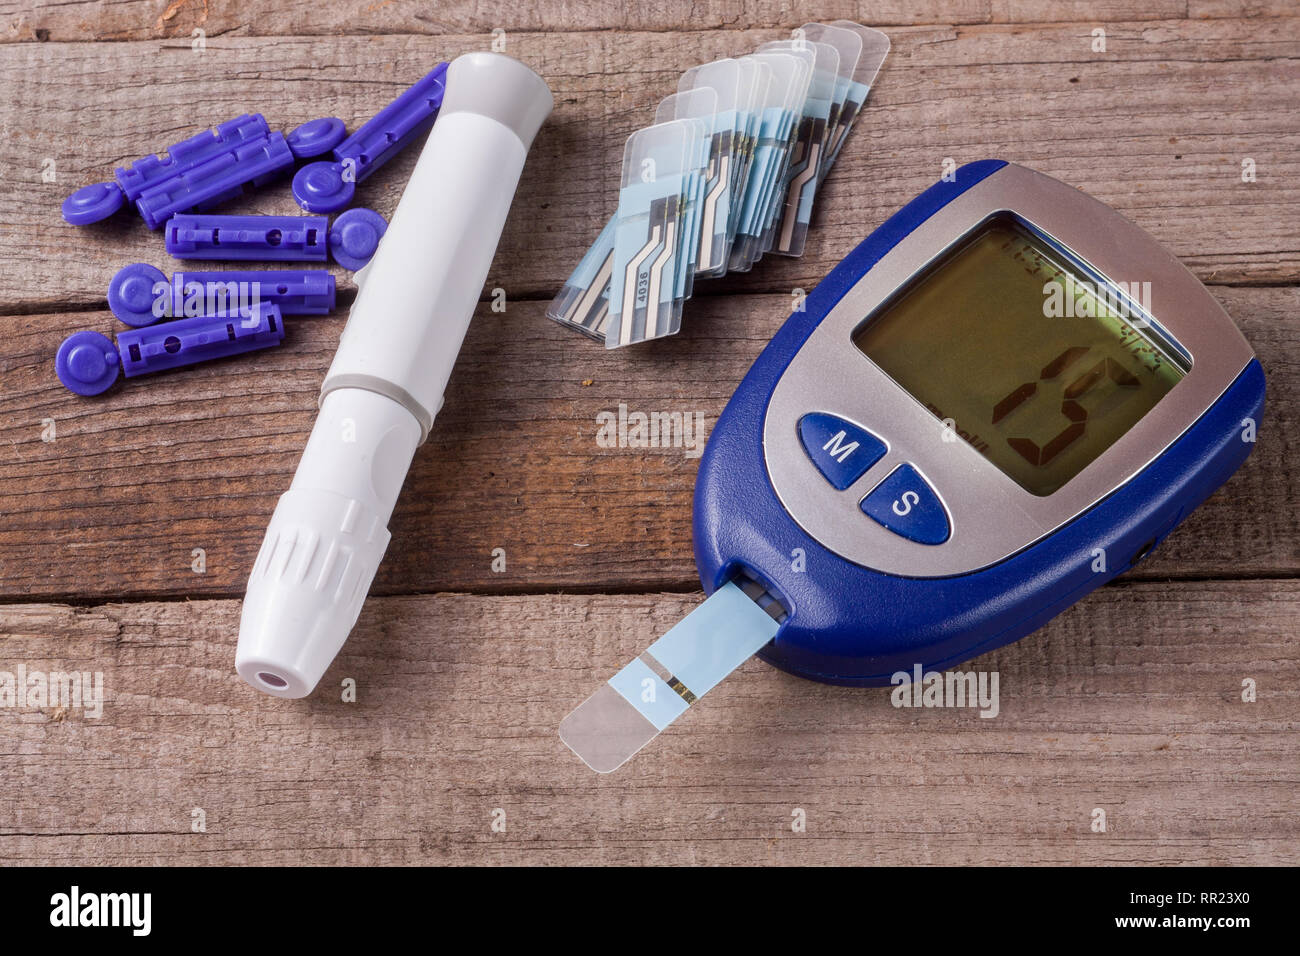 blood glucose meter on an old wooden background - Stock Image